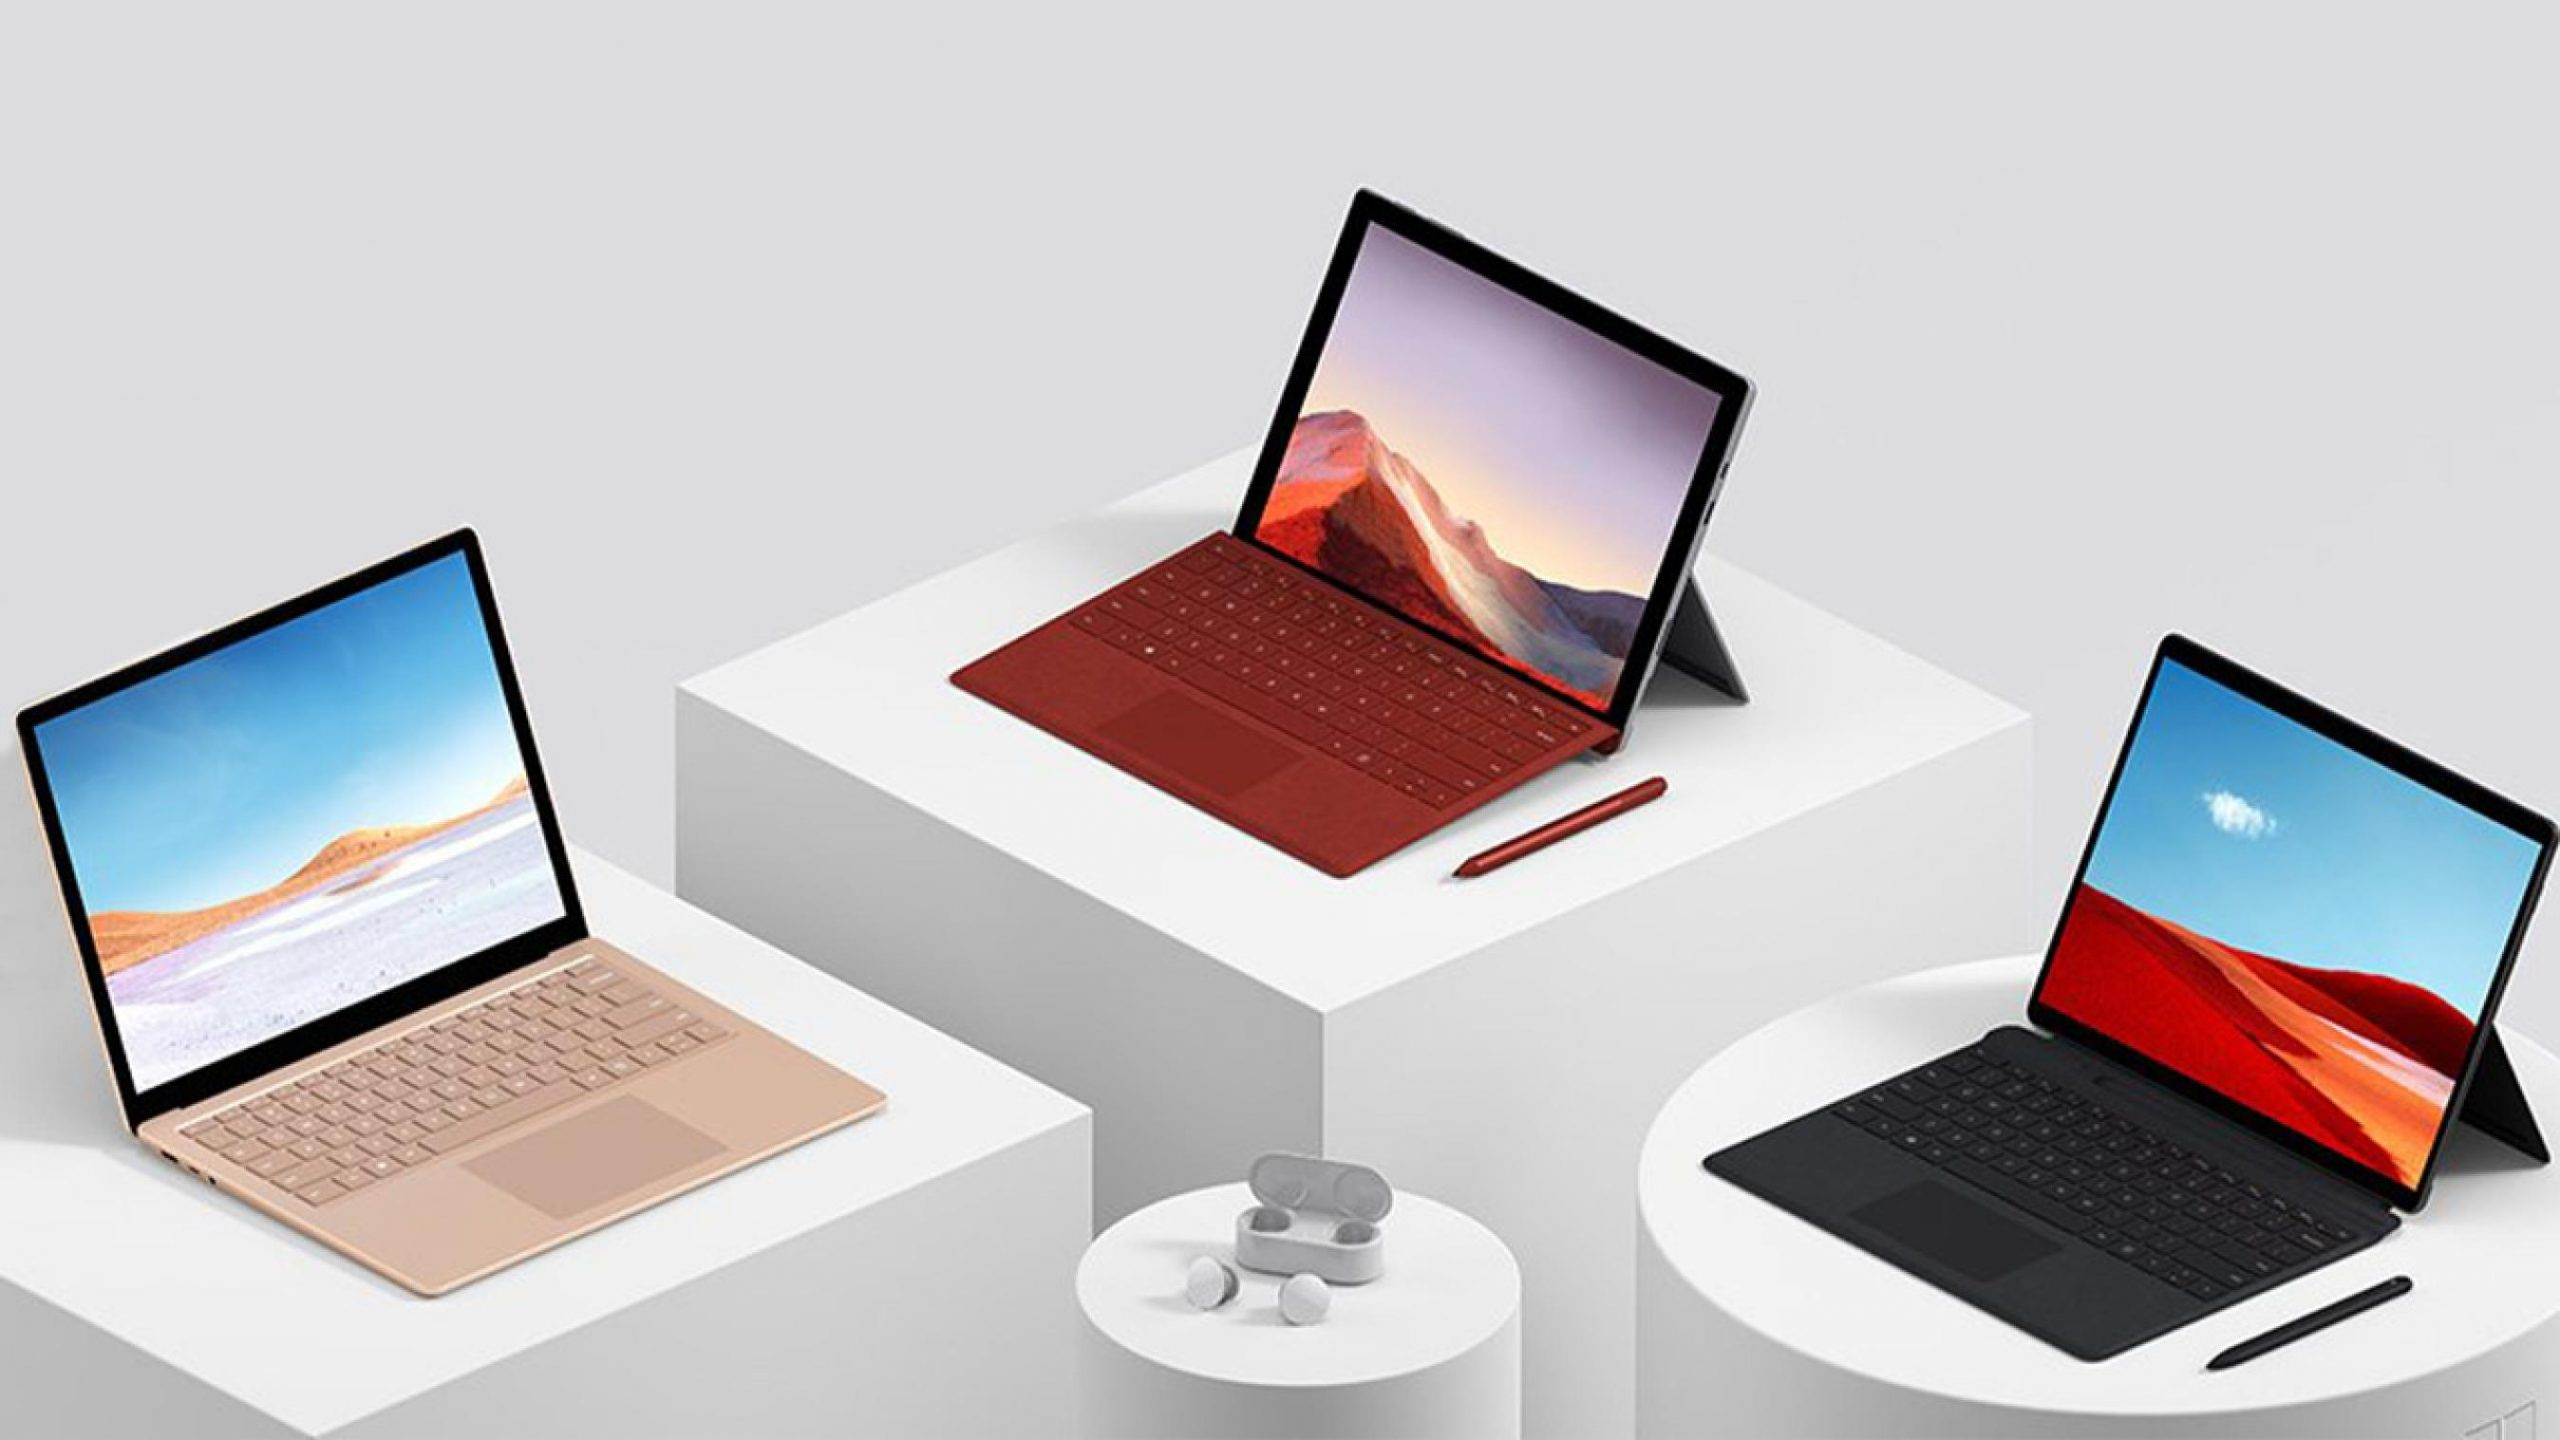 Ufficiali i Microsoft Surface Book 3 e Surface GO 2